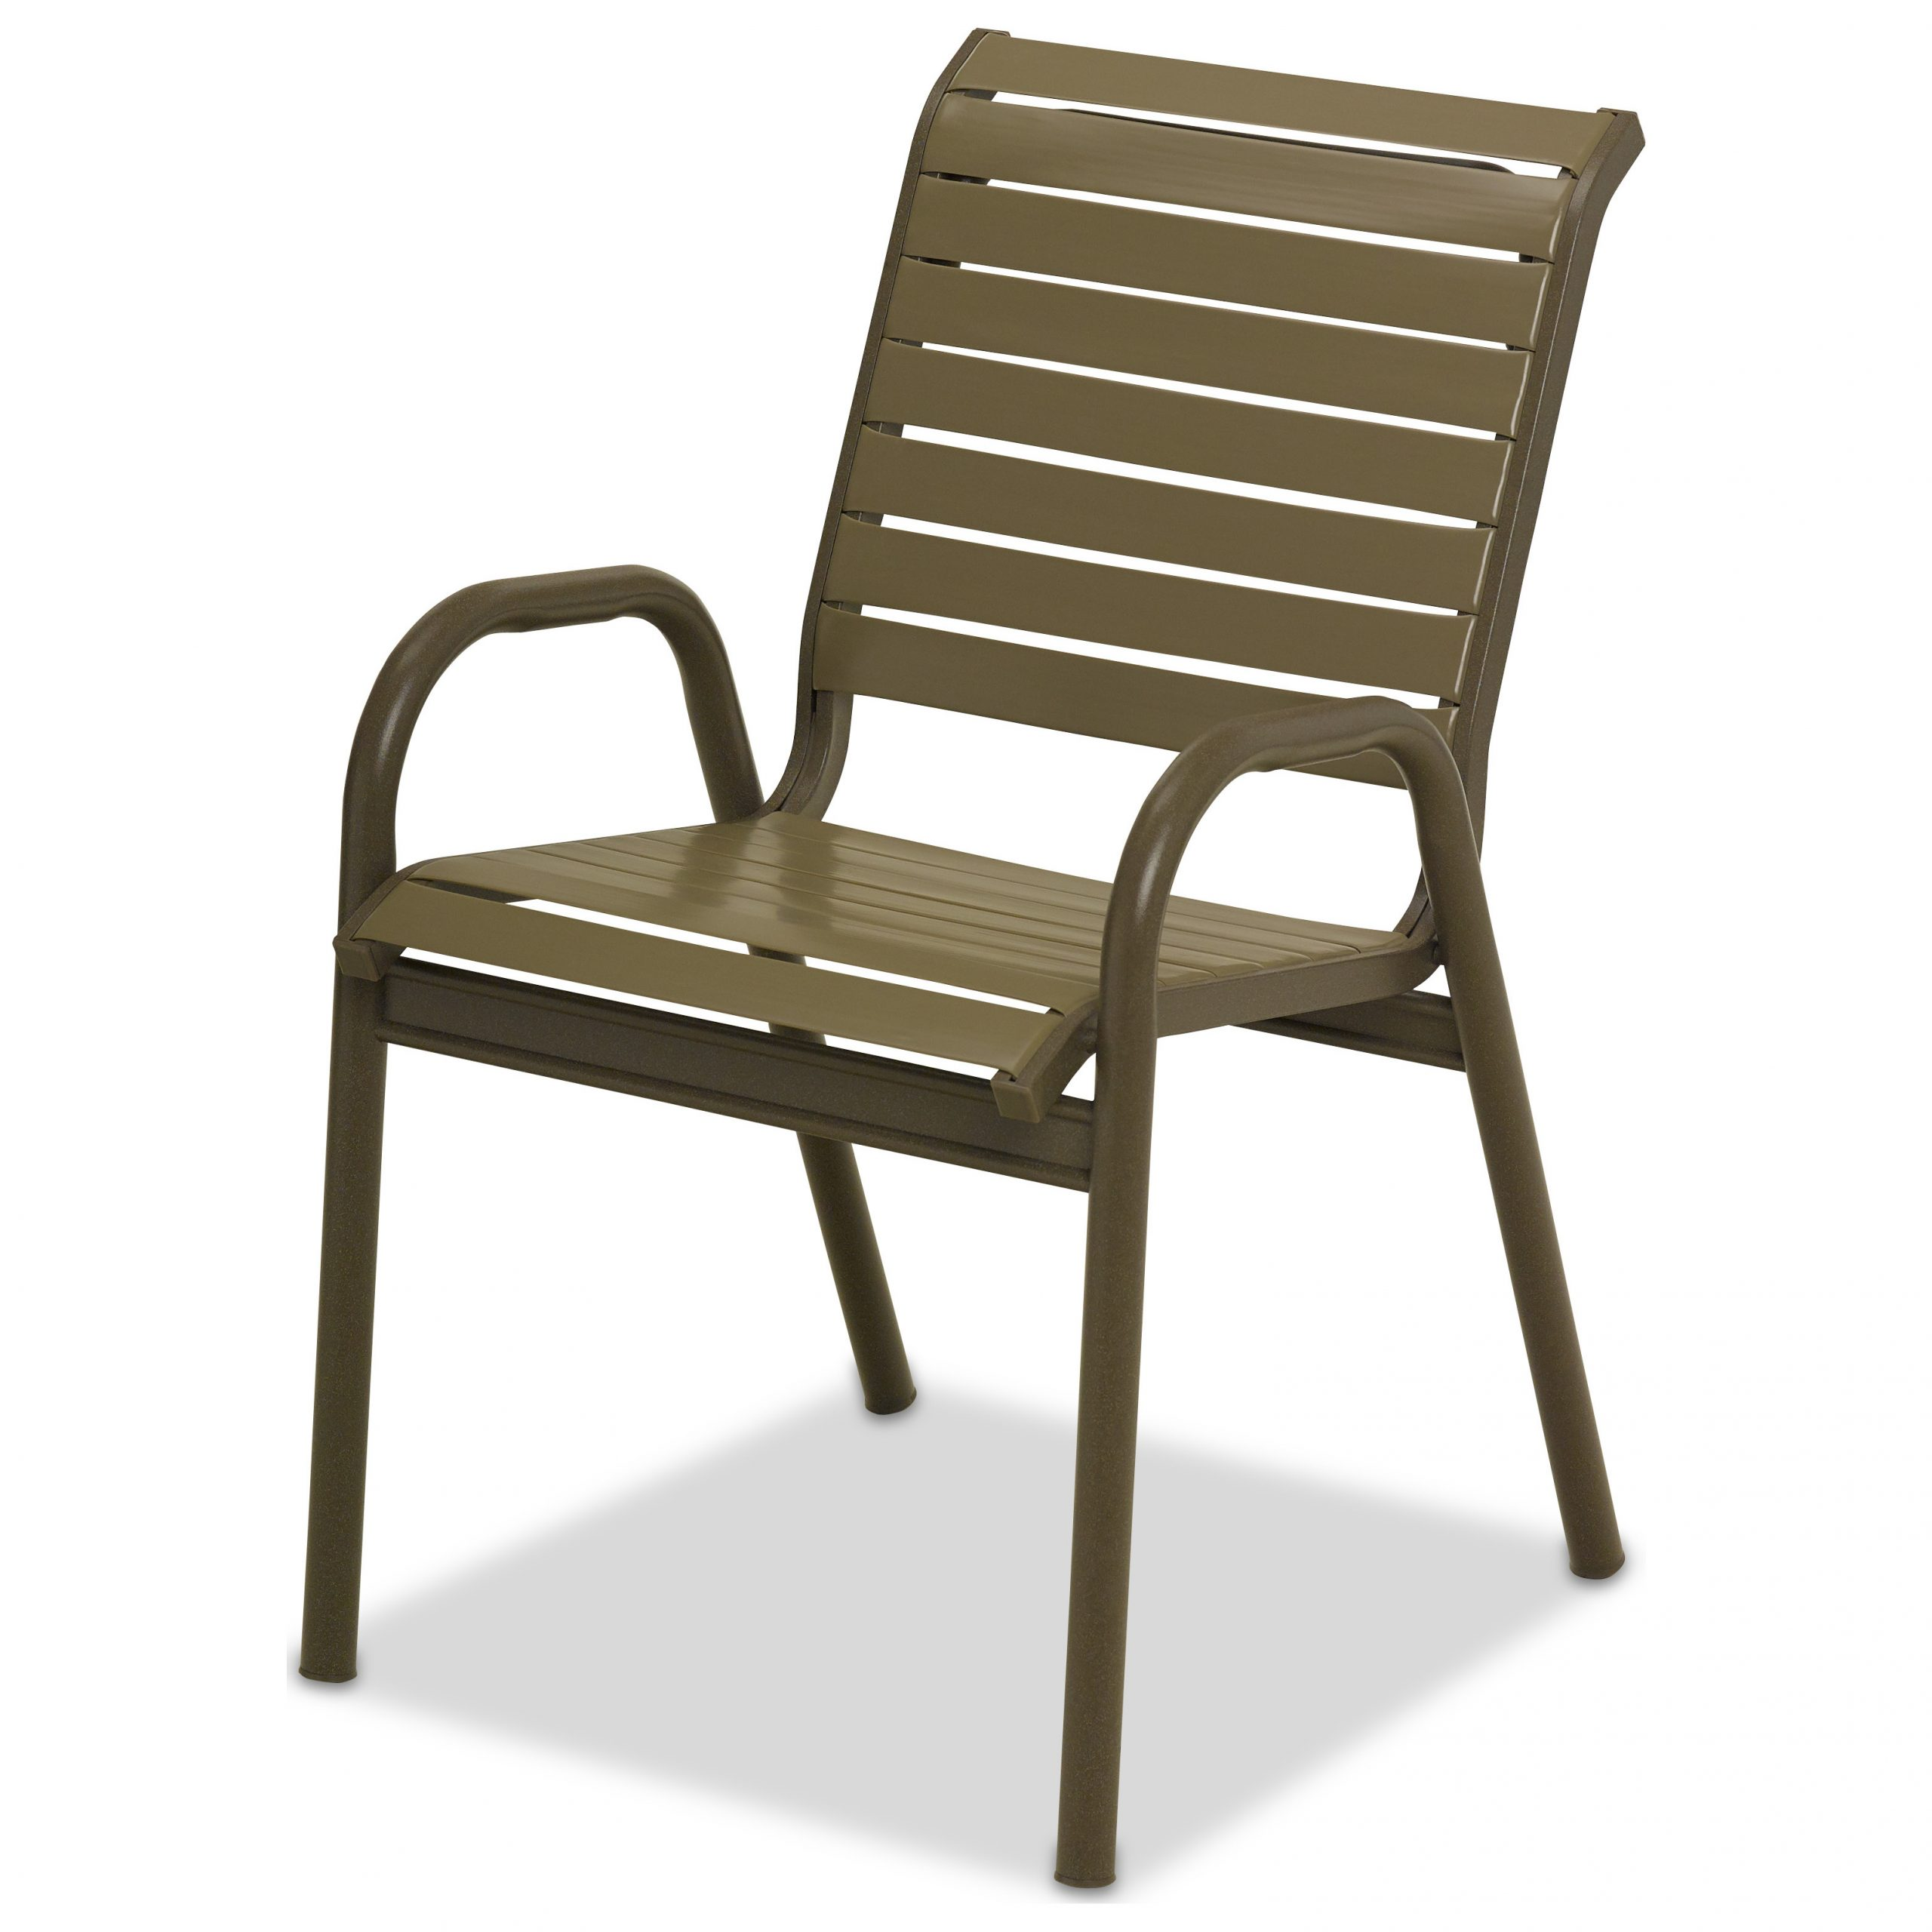 Beachwood Arm Chairs Within Trendy Stacking Chairs Textured Desert Finish Telescope Casual (View 20 of 20)